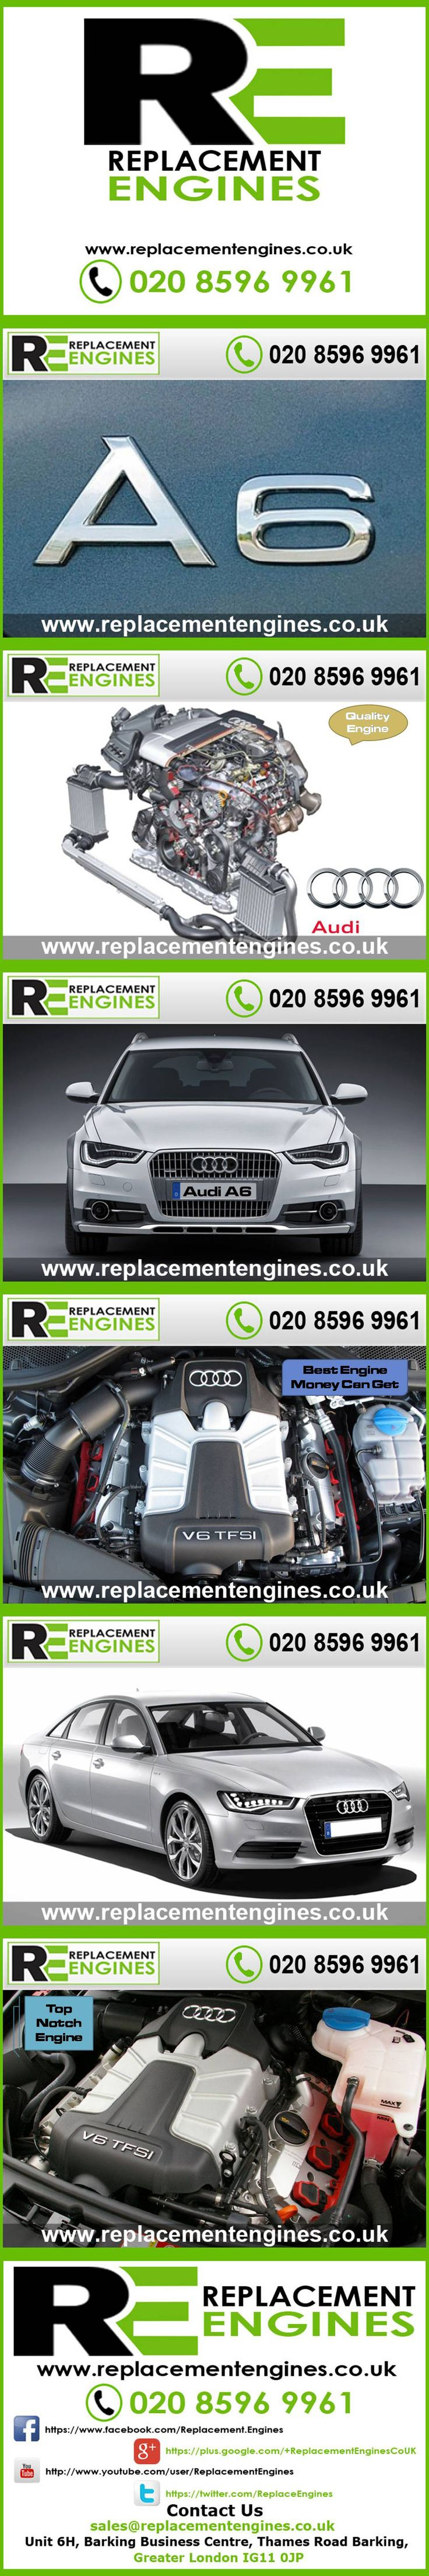 9613af81ca86422a6f92d0de4140d2b9--reconditioned-engines-replacement-engines Fascinating Bugatti Veyron Price south African Rands Cars Trend